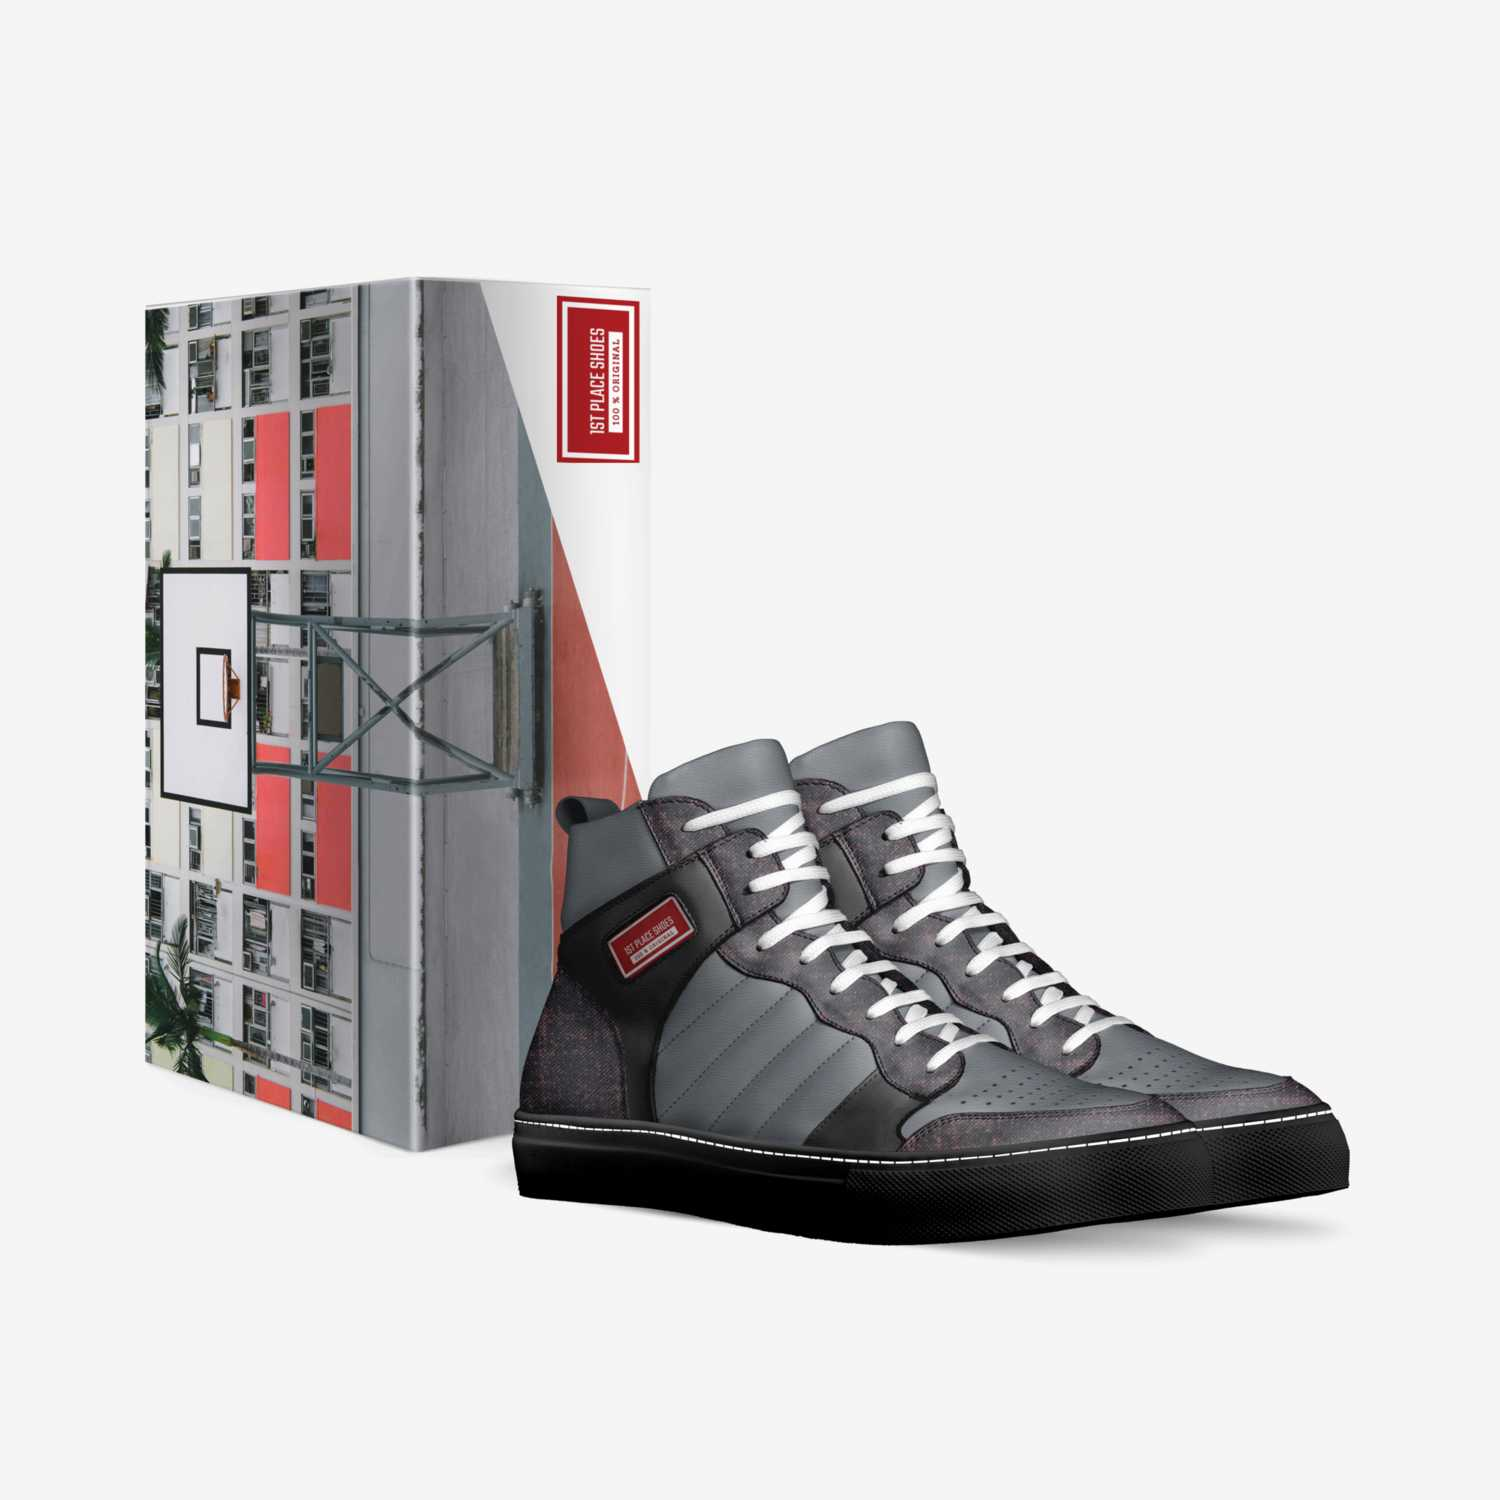 1st Place Shoes custom made in Italy shoes by Jonnie Kae | Box view